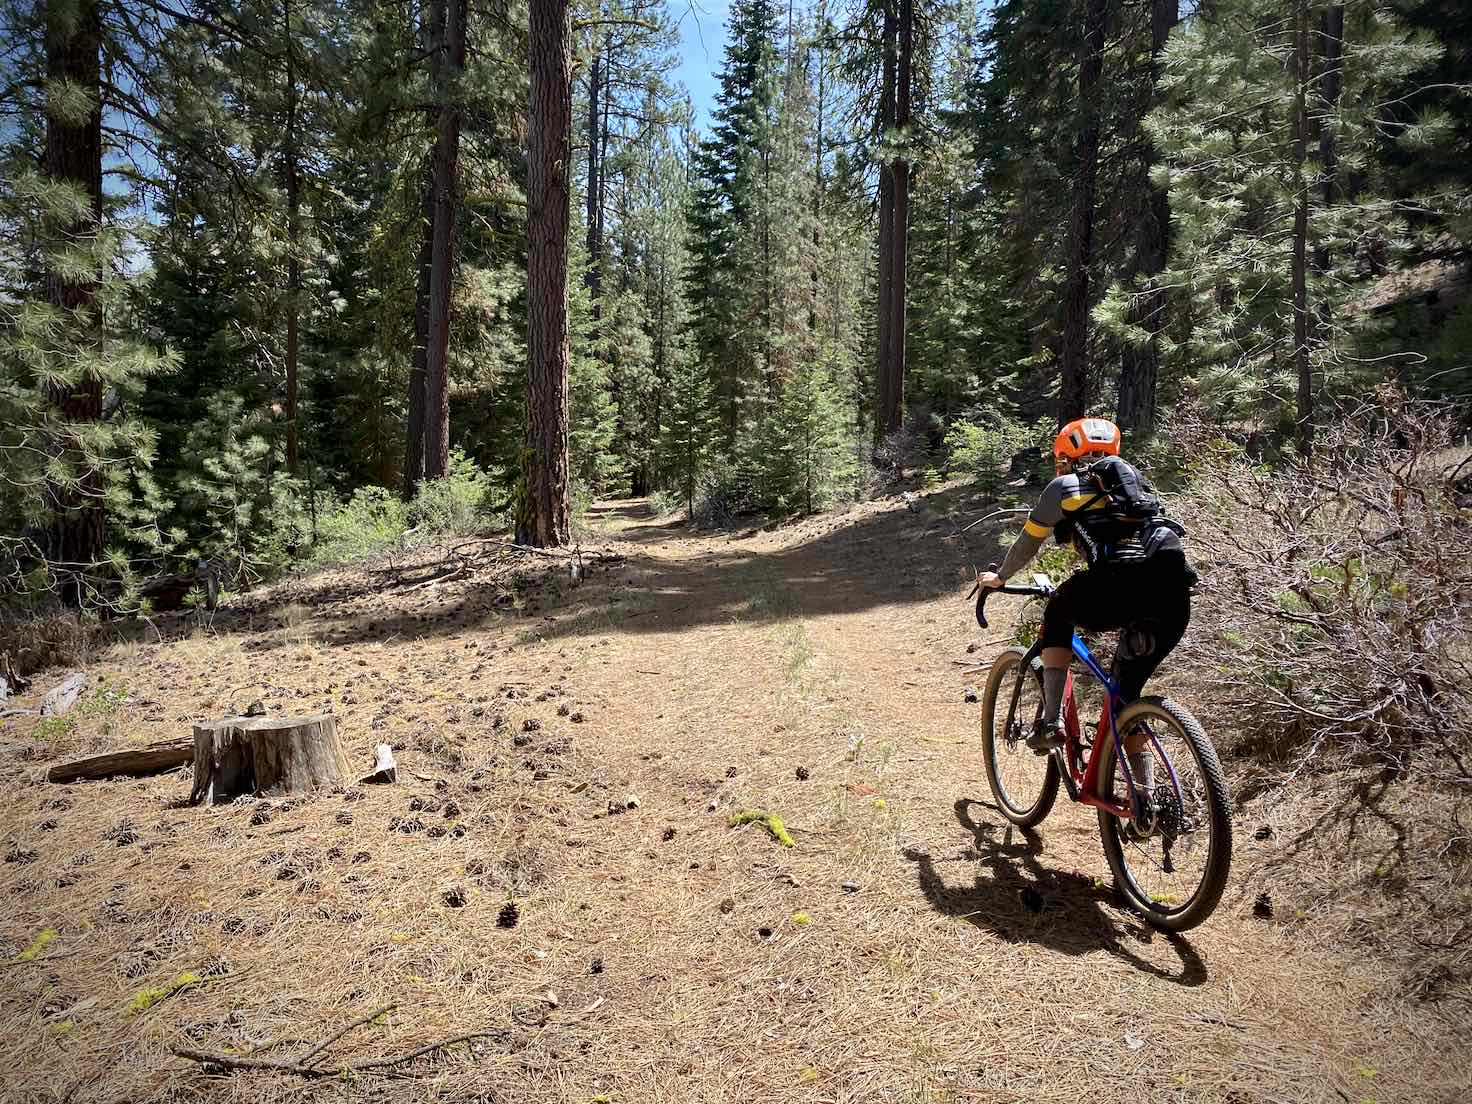 Gravel Girl ripping through some double-track roads in Winema National Forest.